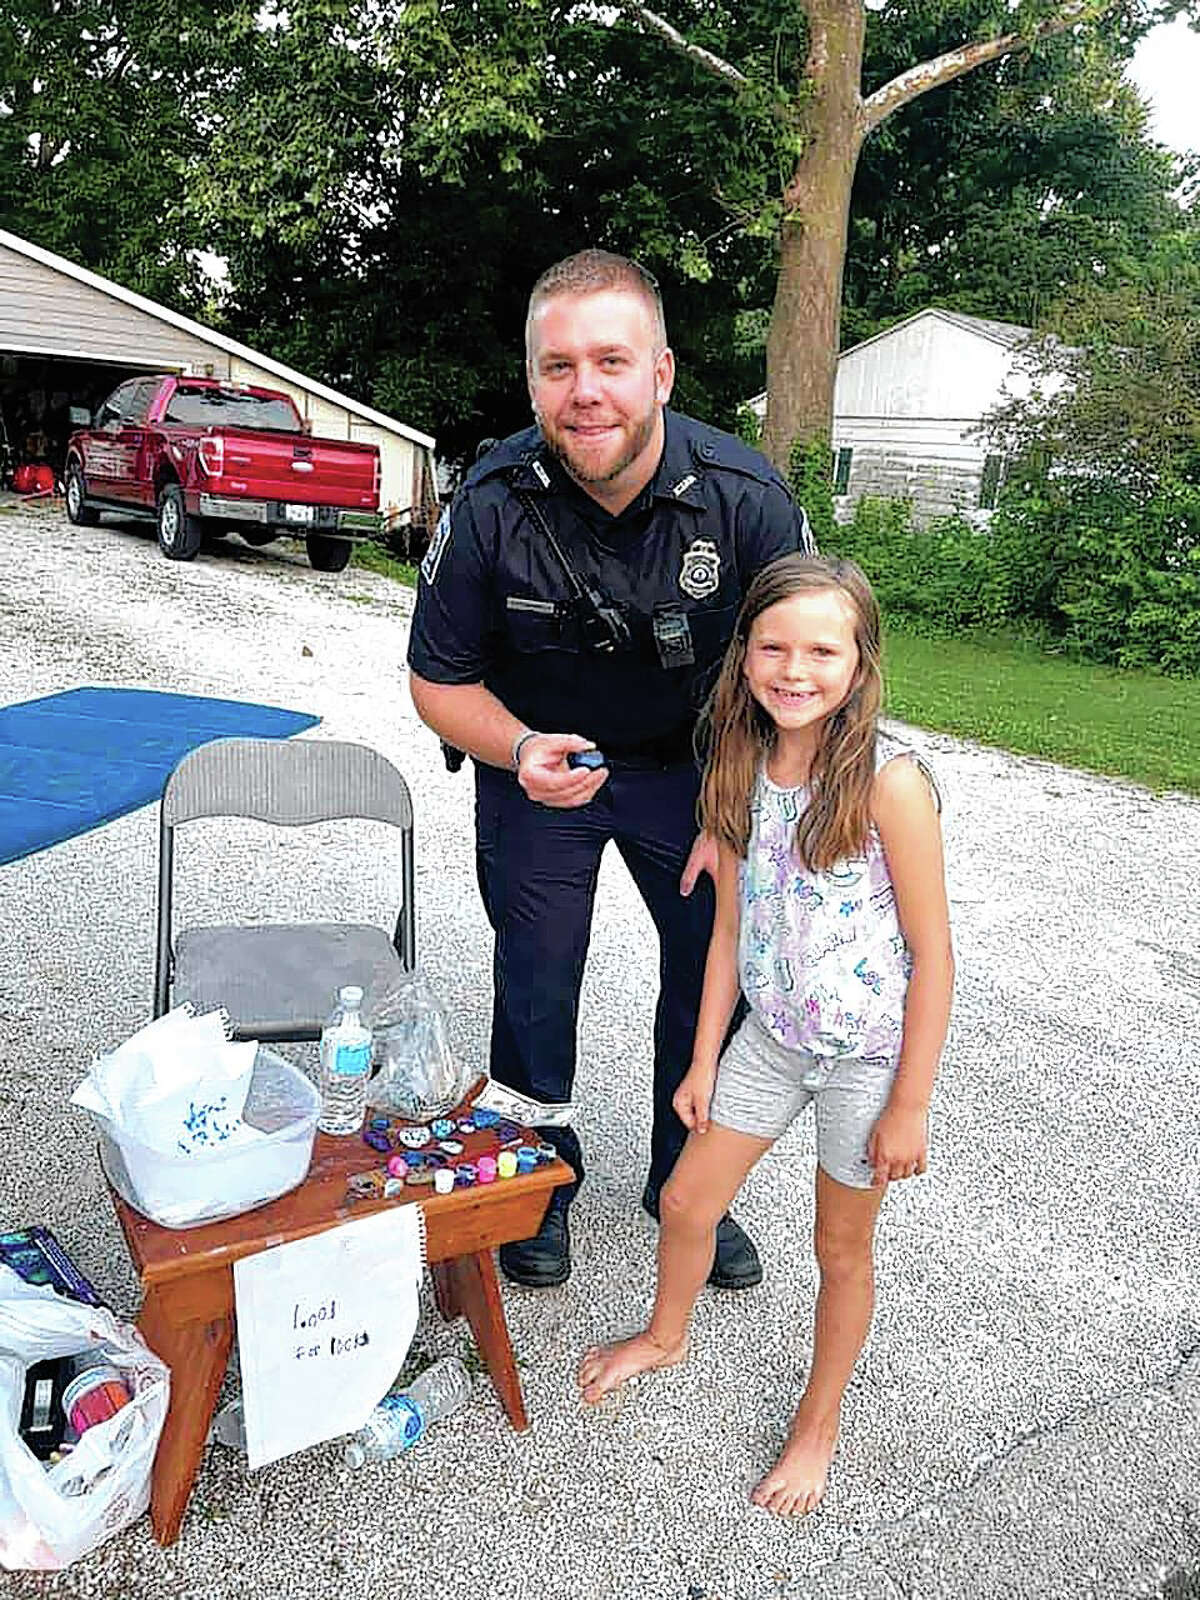 While on patrol Tuesday evening, South Jacksonville patrolmen Hunter Parks and Daniel Bormann (not shown) noticed Alaina Shillings selling painted rocks at 1712 Linden St. As part of their efforts to build positive relationships with the community, Parks and Bormann made a non-routine stop to buy custom-painted rocks from Alaina.